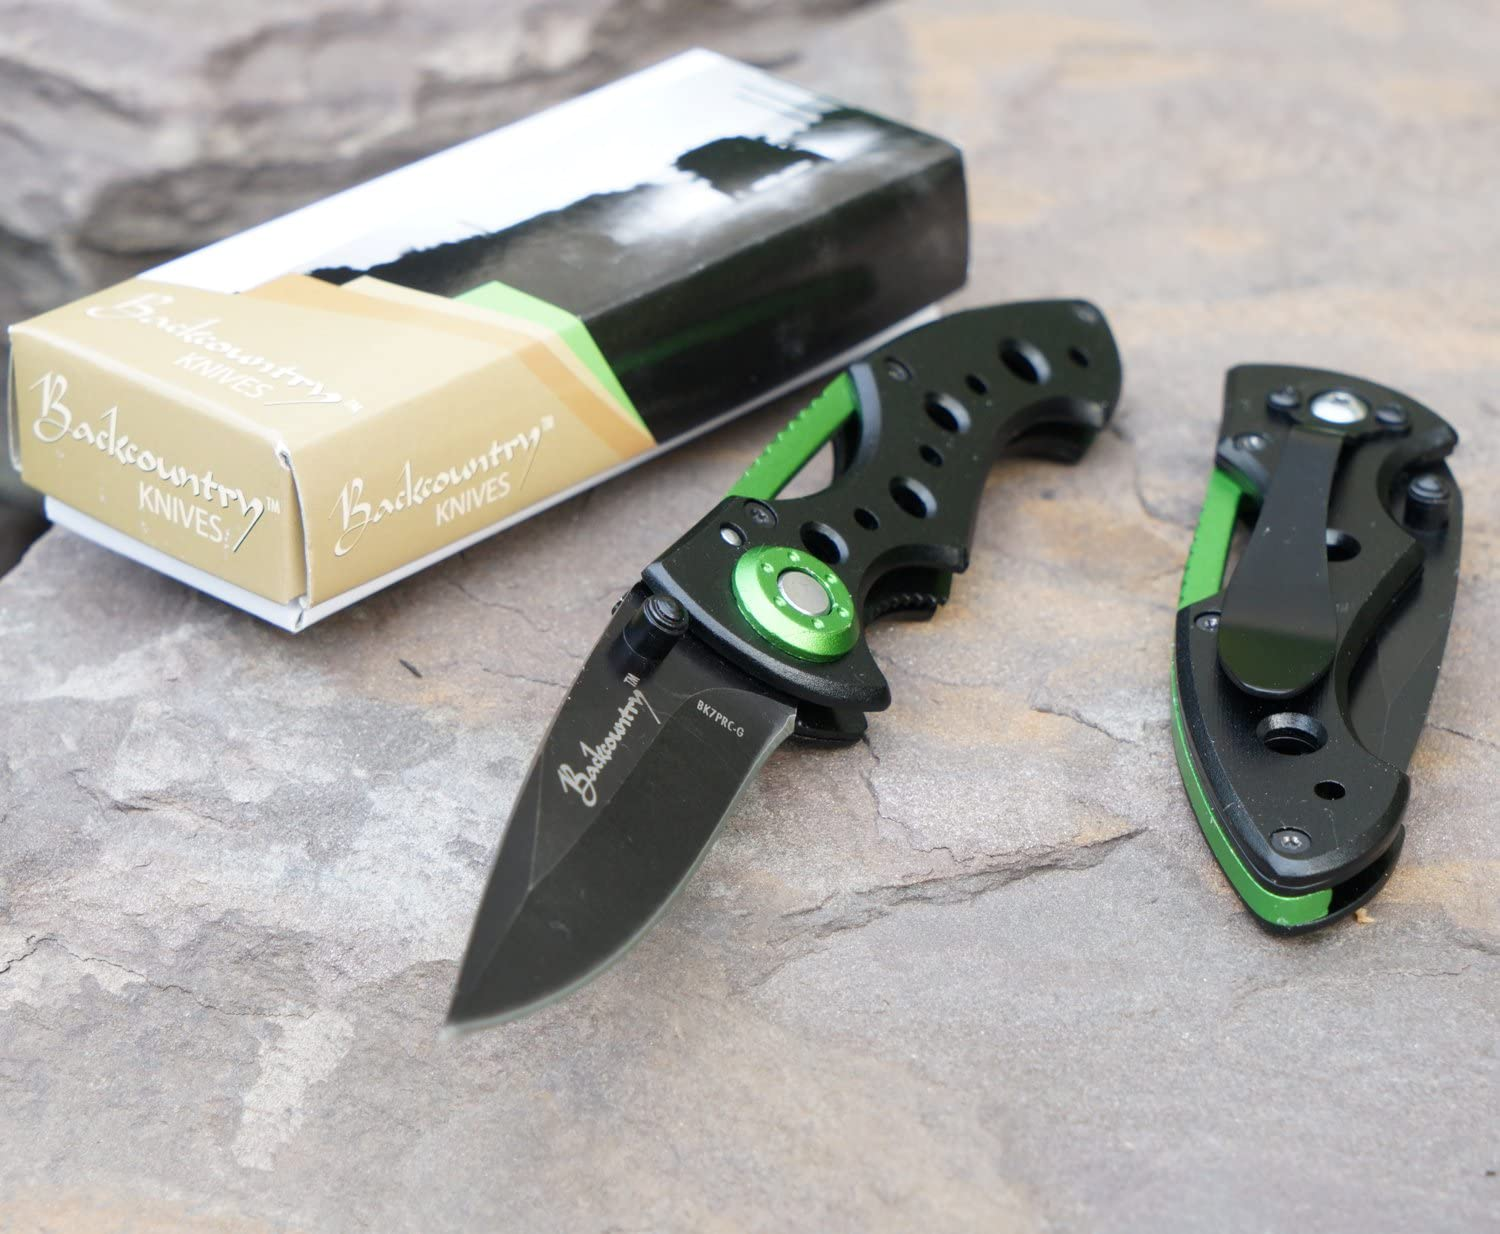 Backcountry Scout Green Folding Pocket Knife, 2.5 Inch Straight Blade,, Camping, Hiking, Everyday Carry